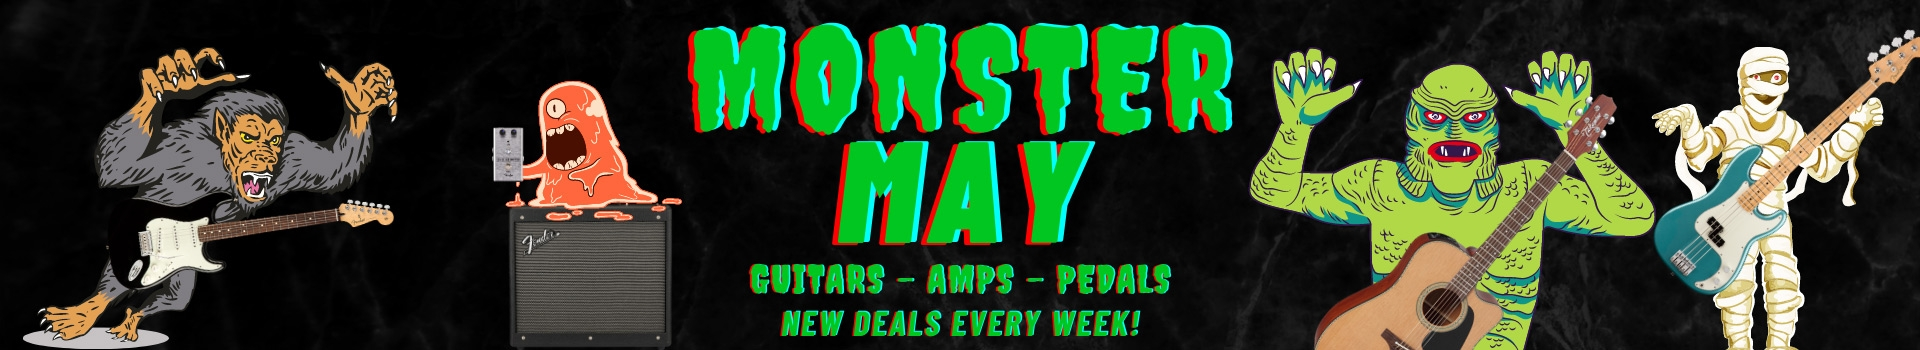 Monster May 2021 - Guitars, Amps + Pedals